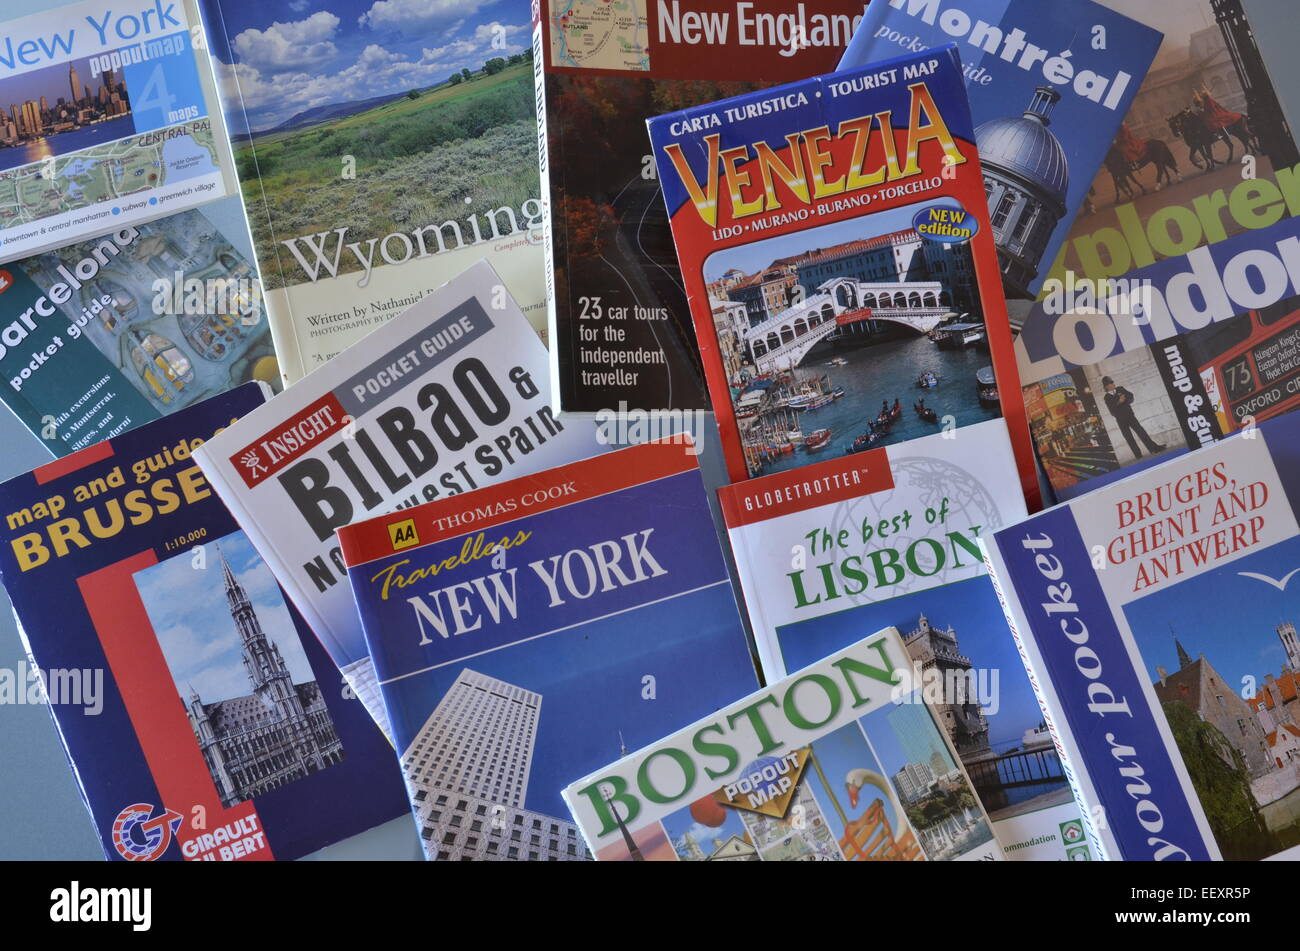 A selection of city guide books - Stock Image